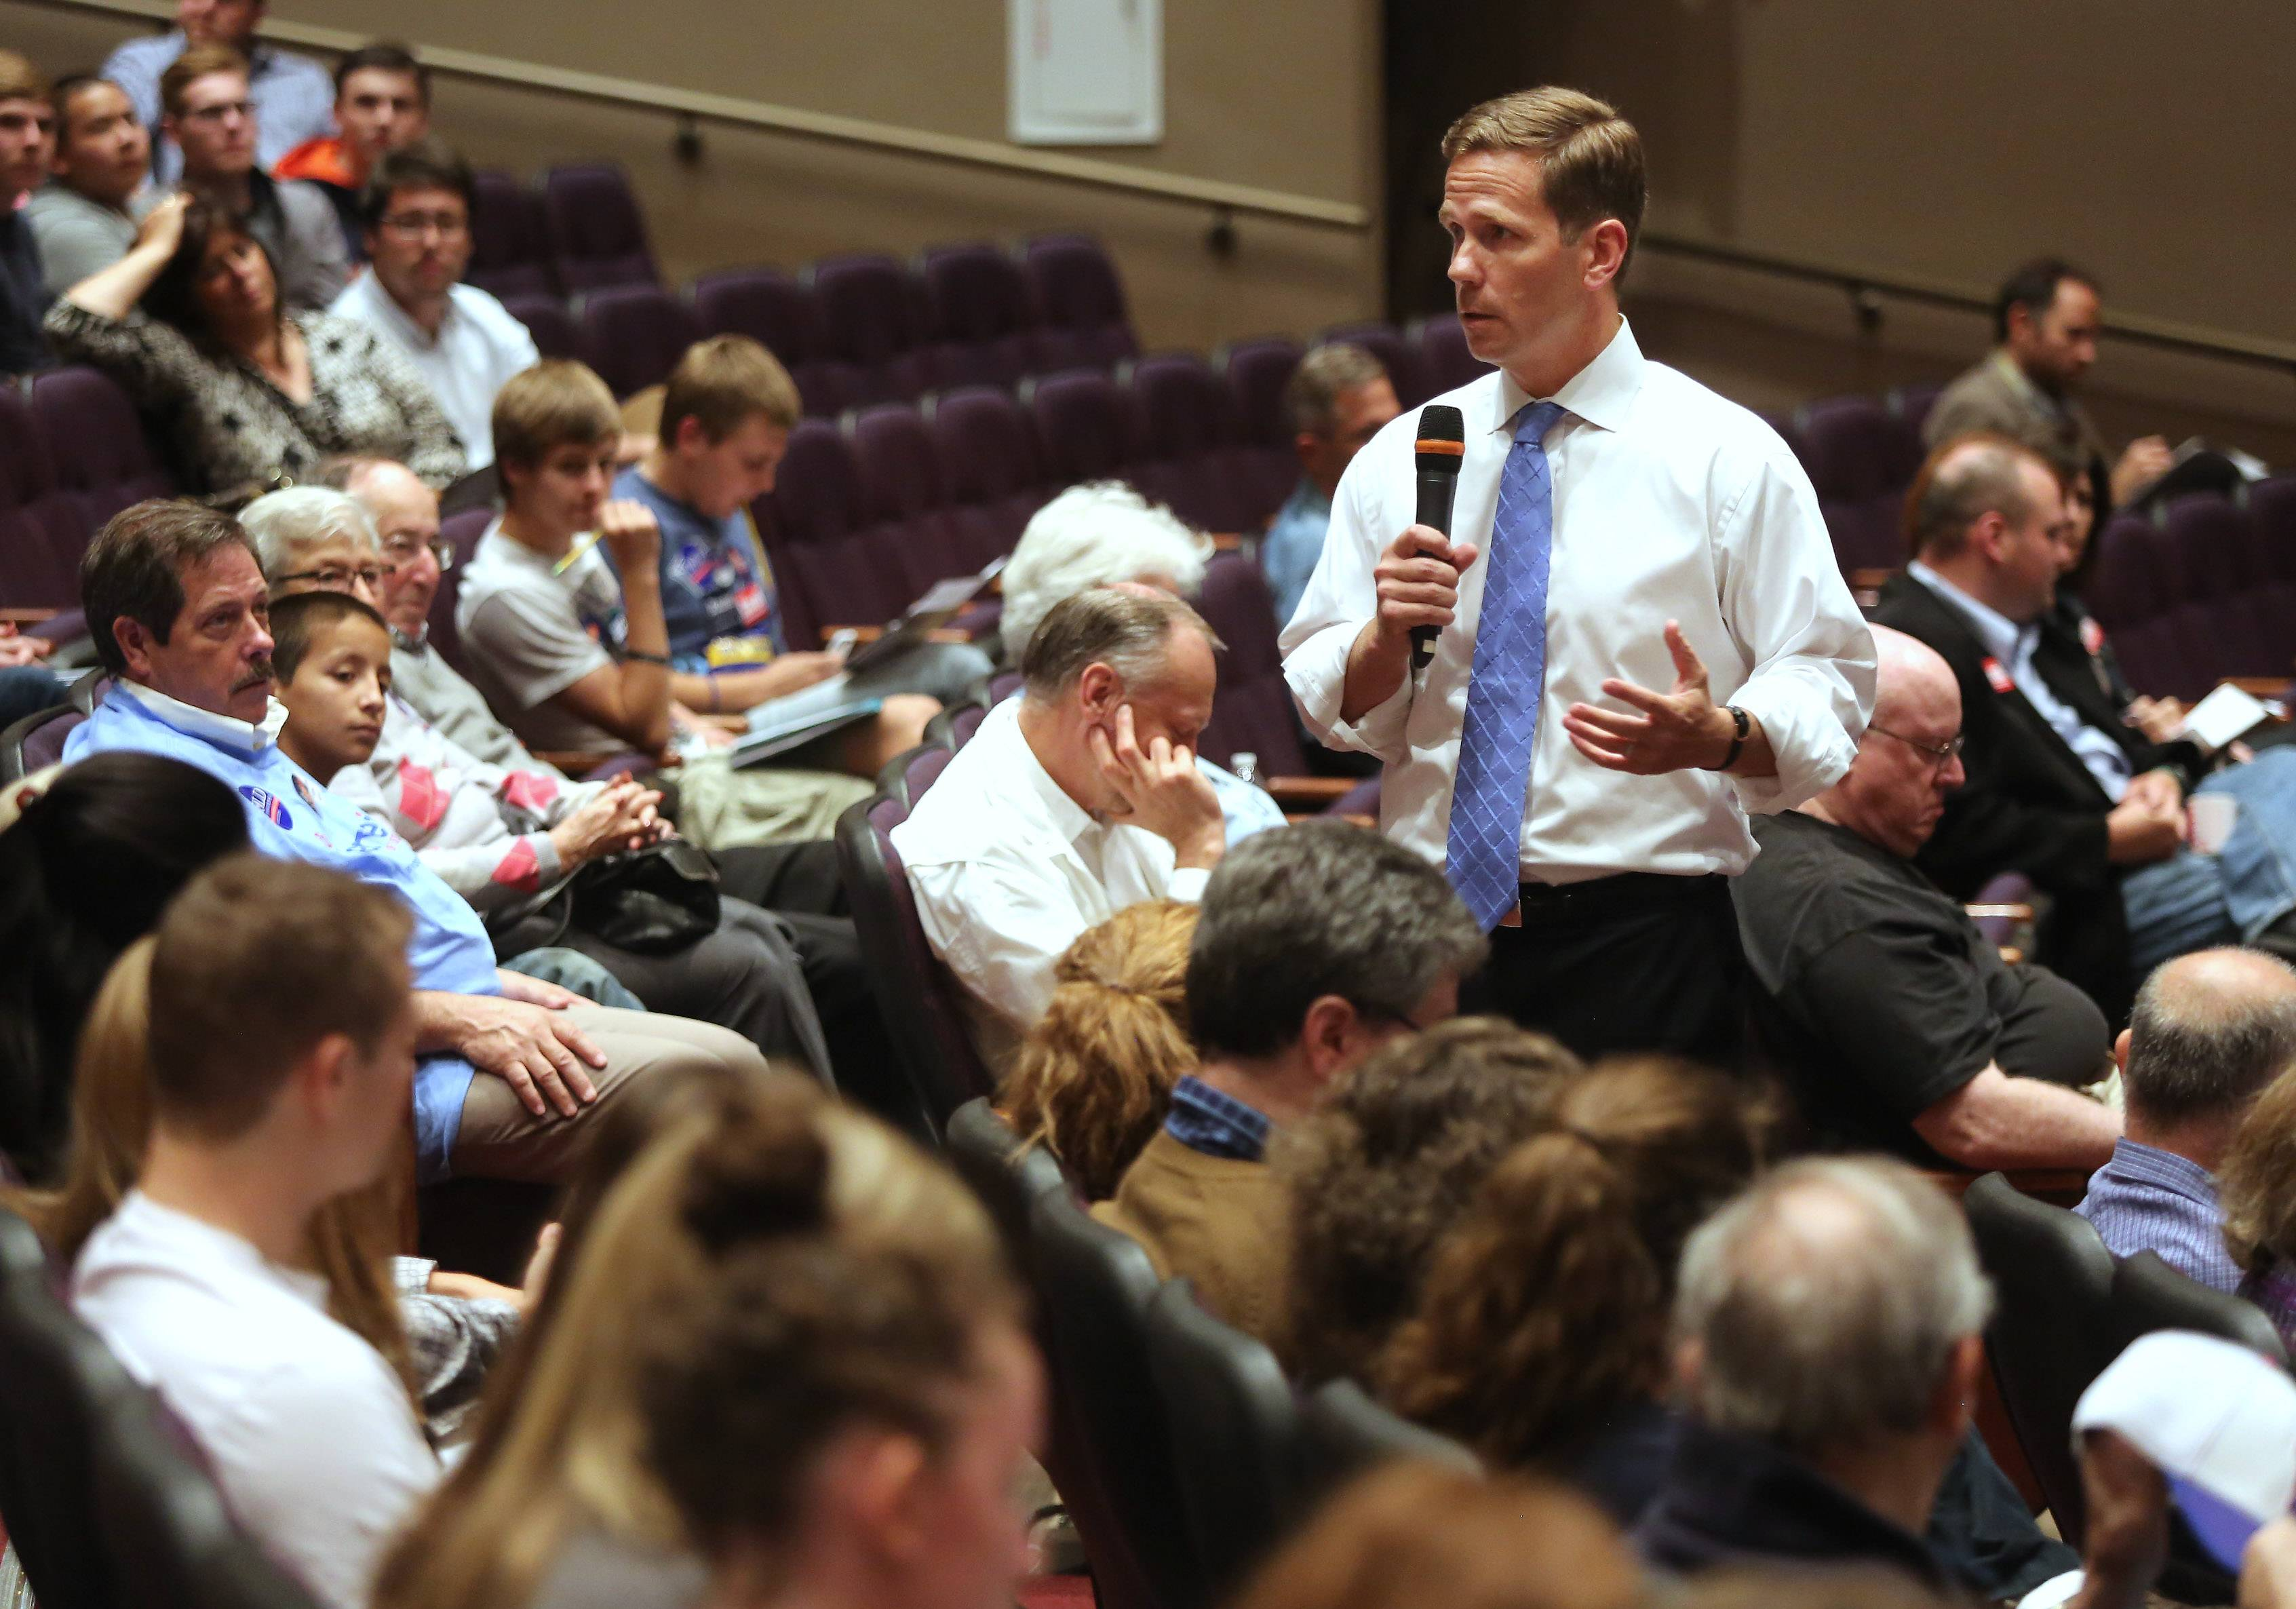 Schneider, Dold talk issues at Stevenson High forum